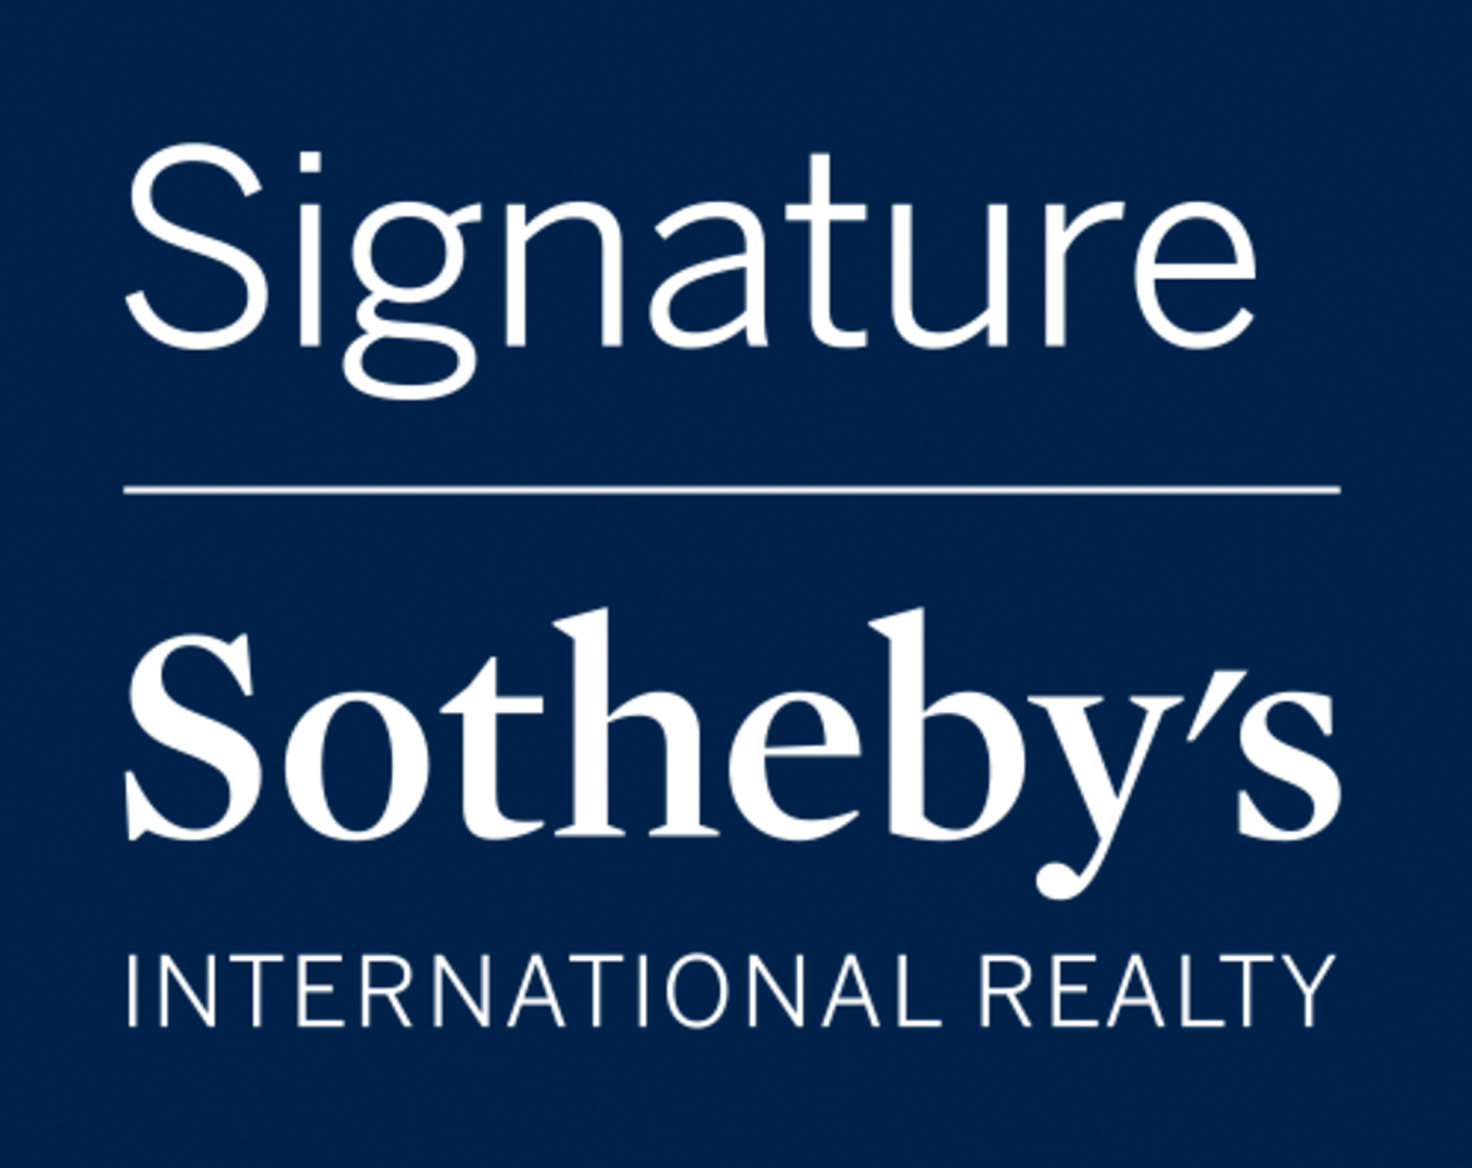 Signature Sotheby's International Realty Bham